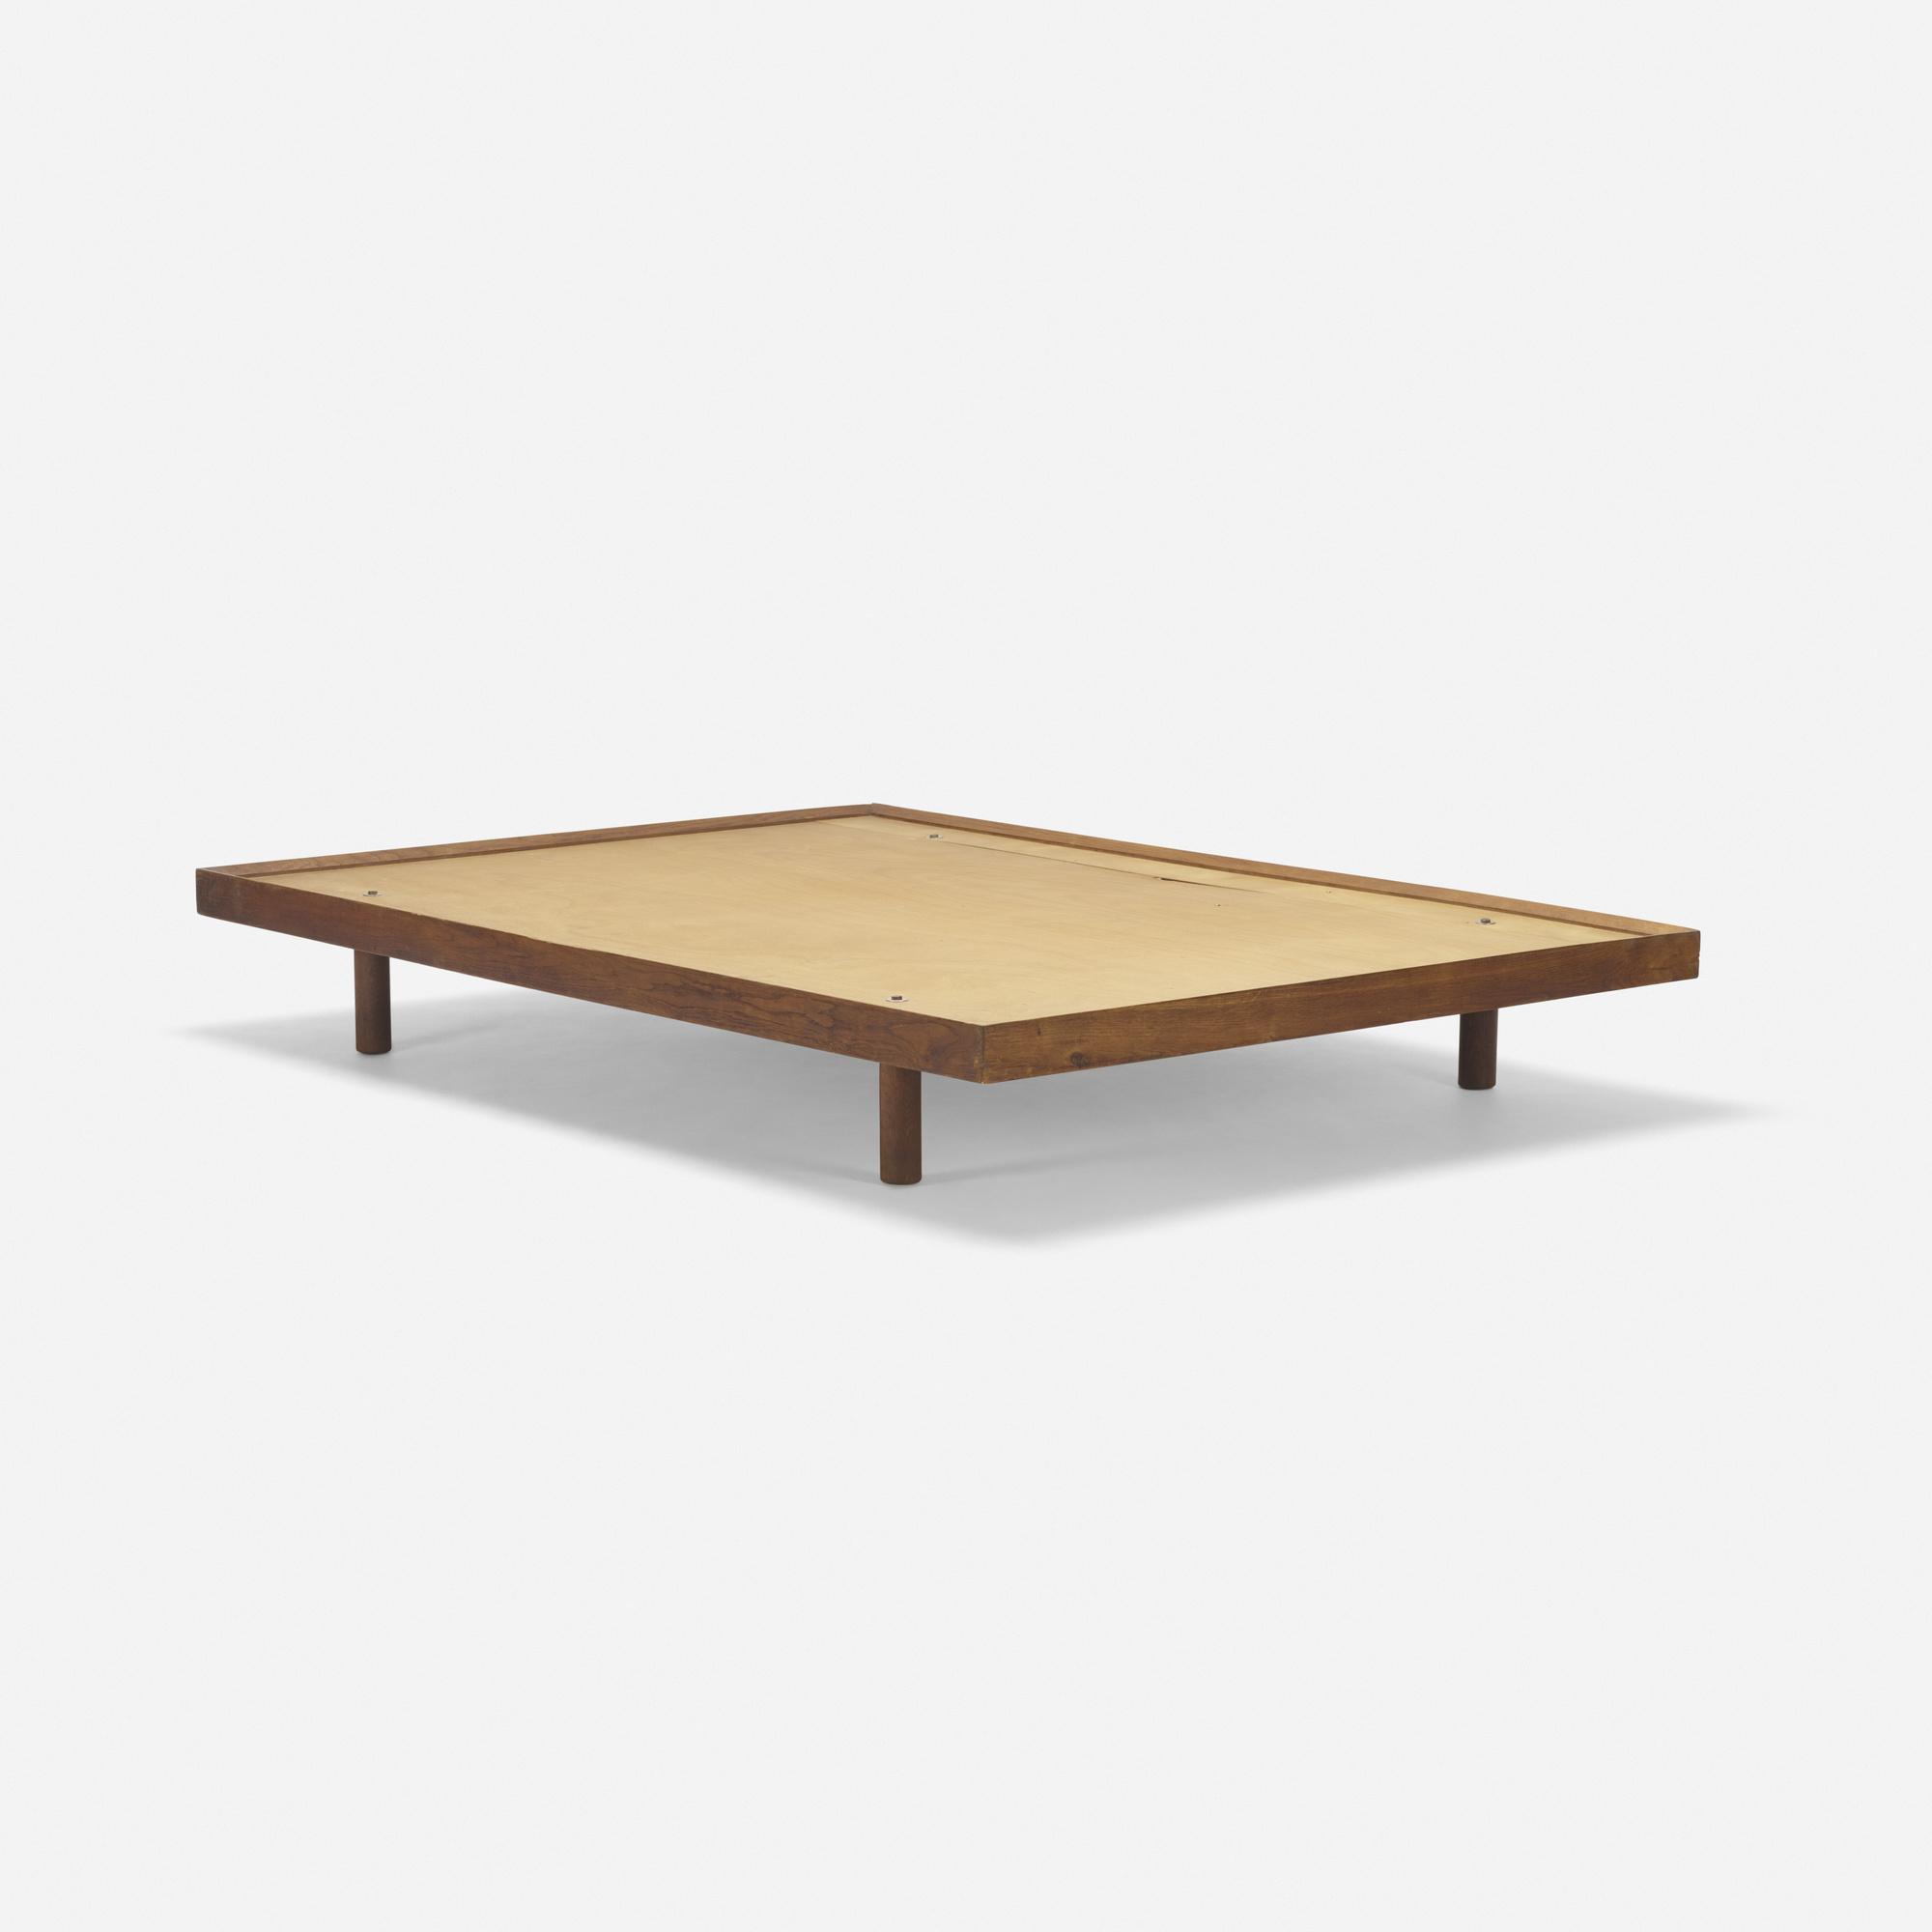 127: Charlotte Perriand / double daybed (1 of 1)